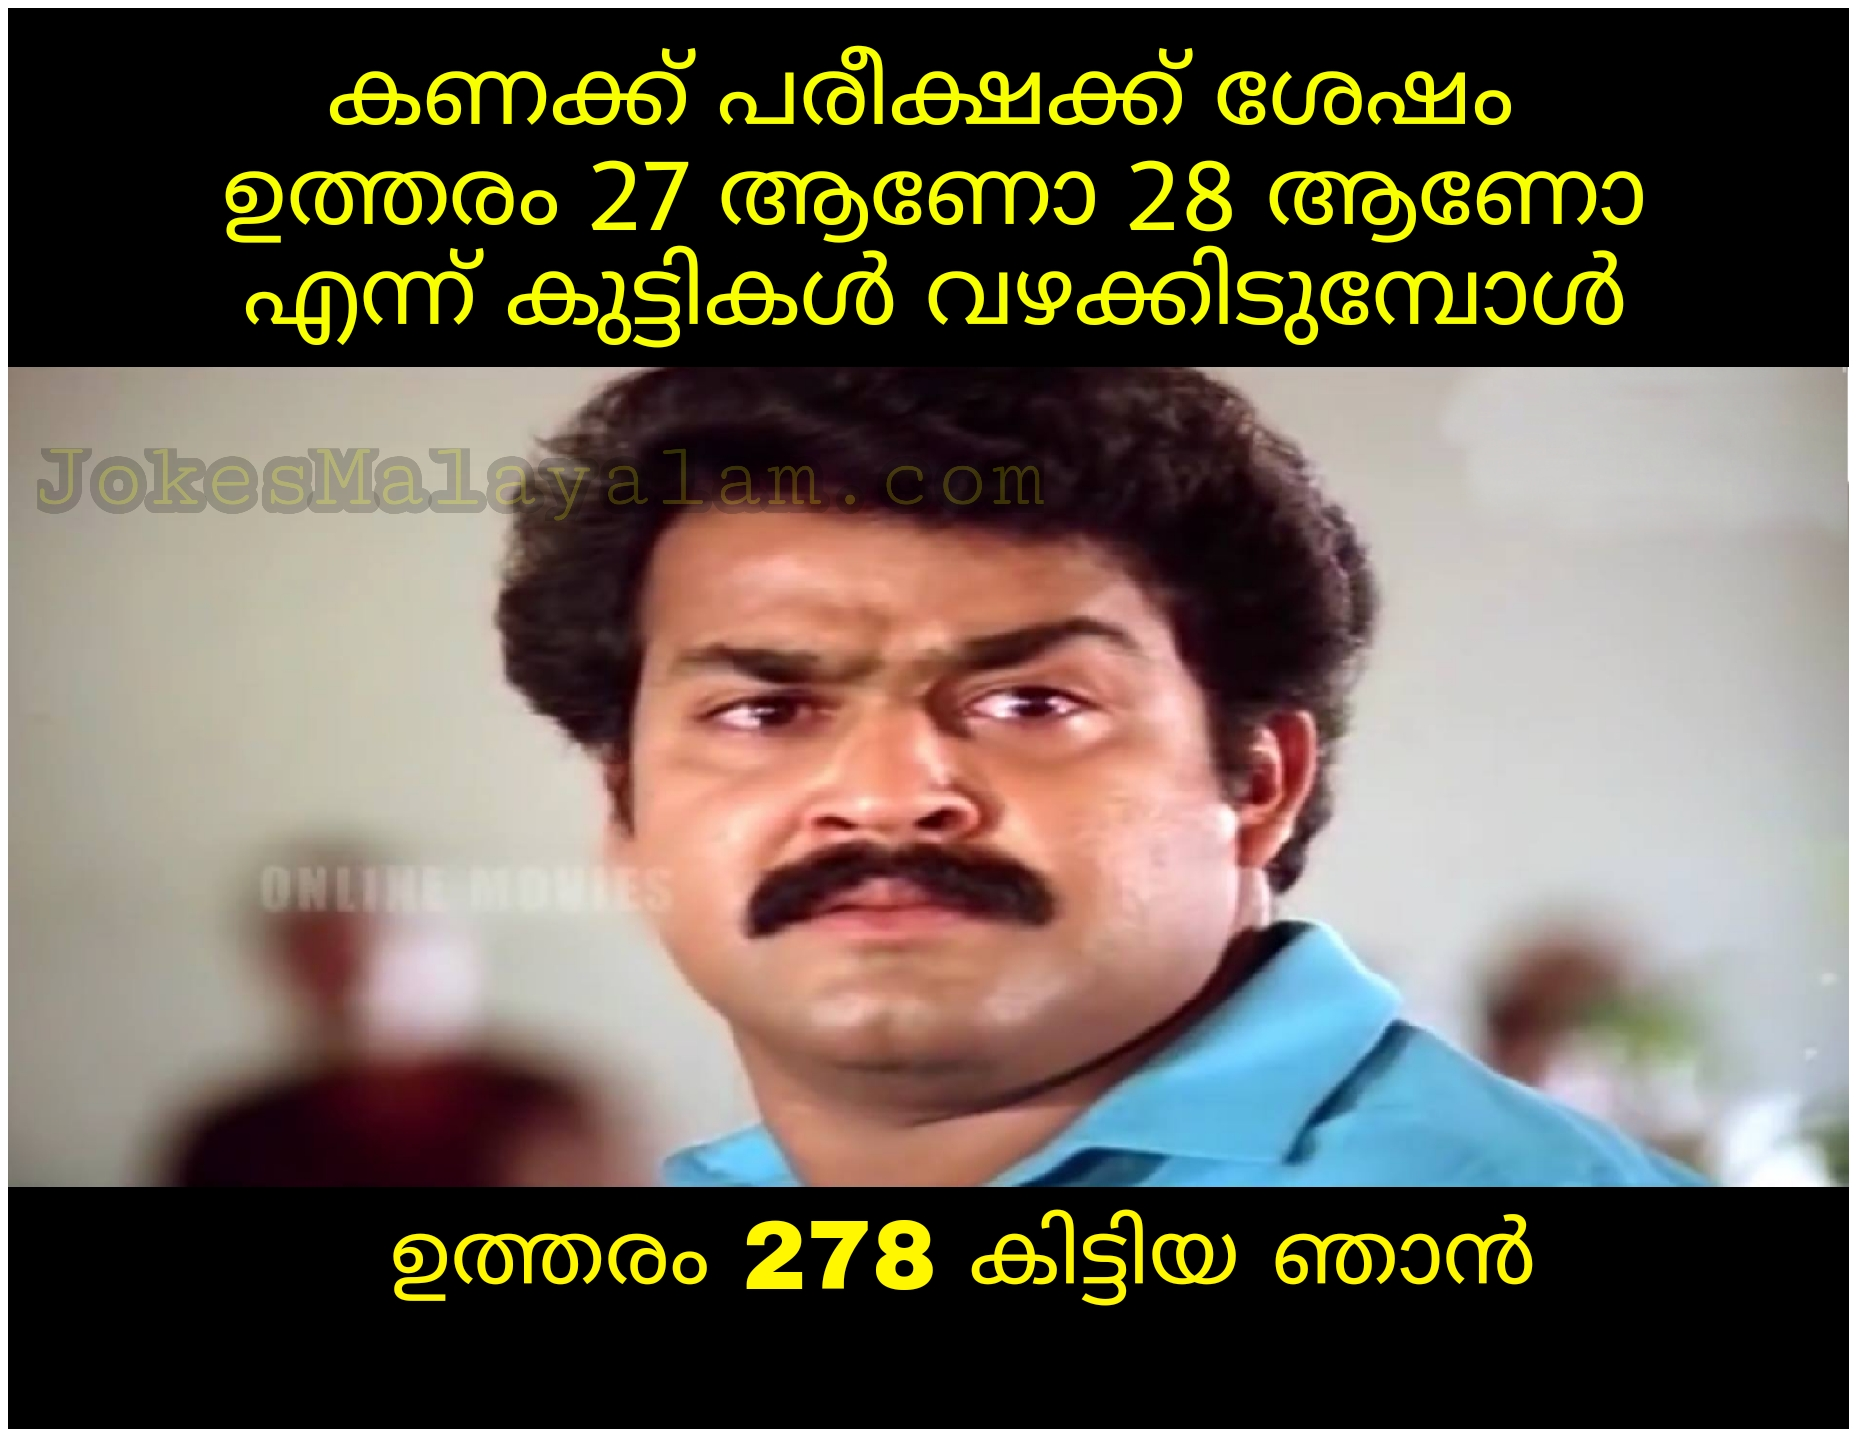 Download Jokes Files from JokesMalayalam com - ഉത്തരം